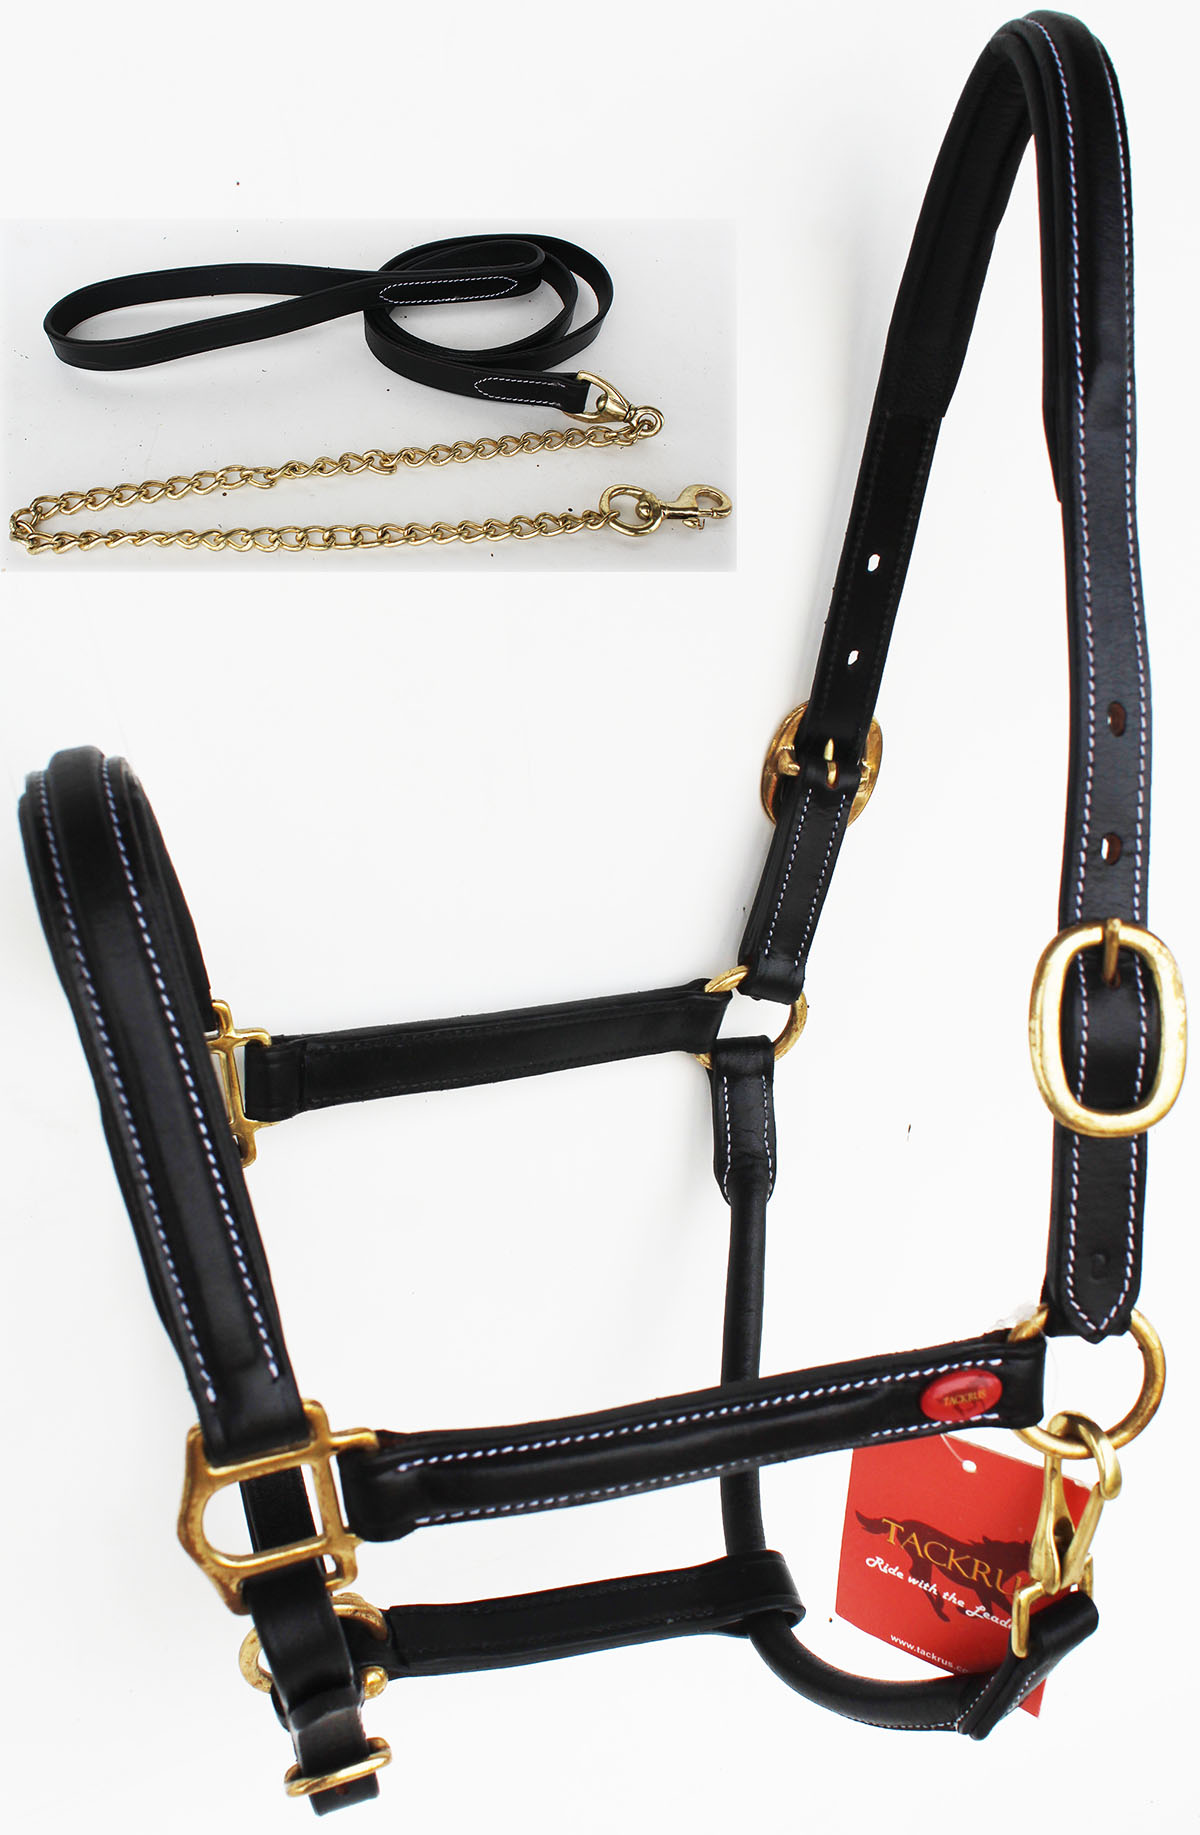 Horse English Western Padded Leather Show Halter Chain Lead  Full 803215F  buy cheap